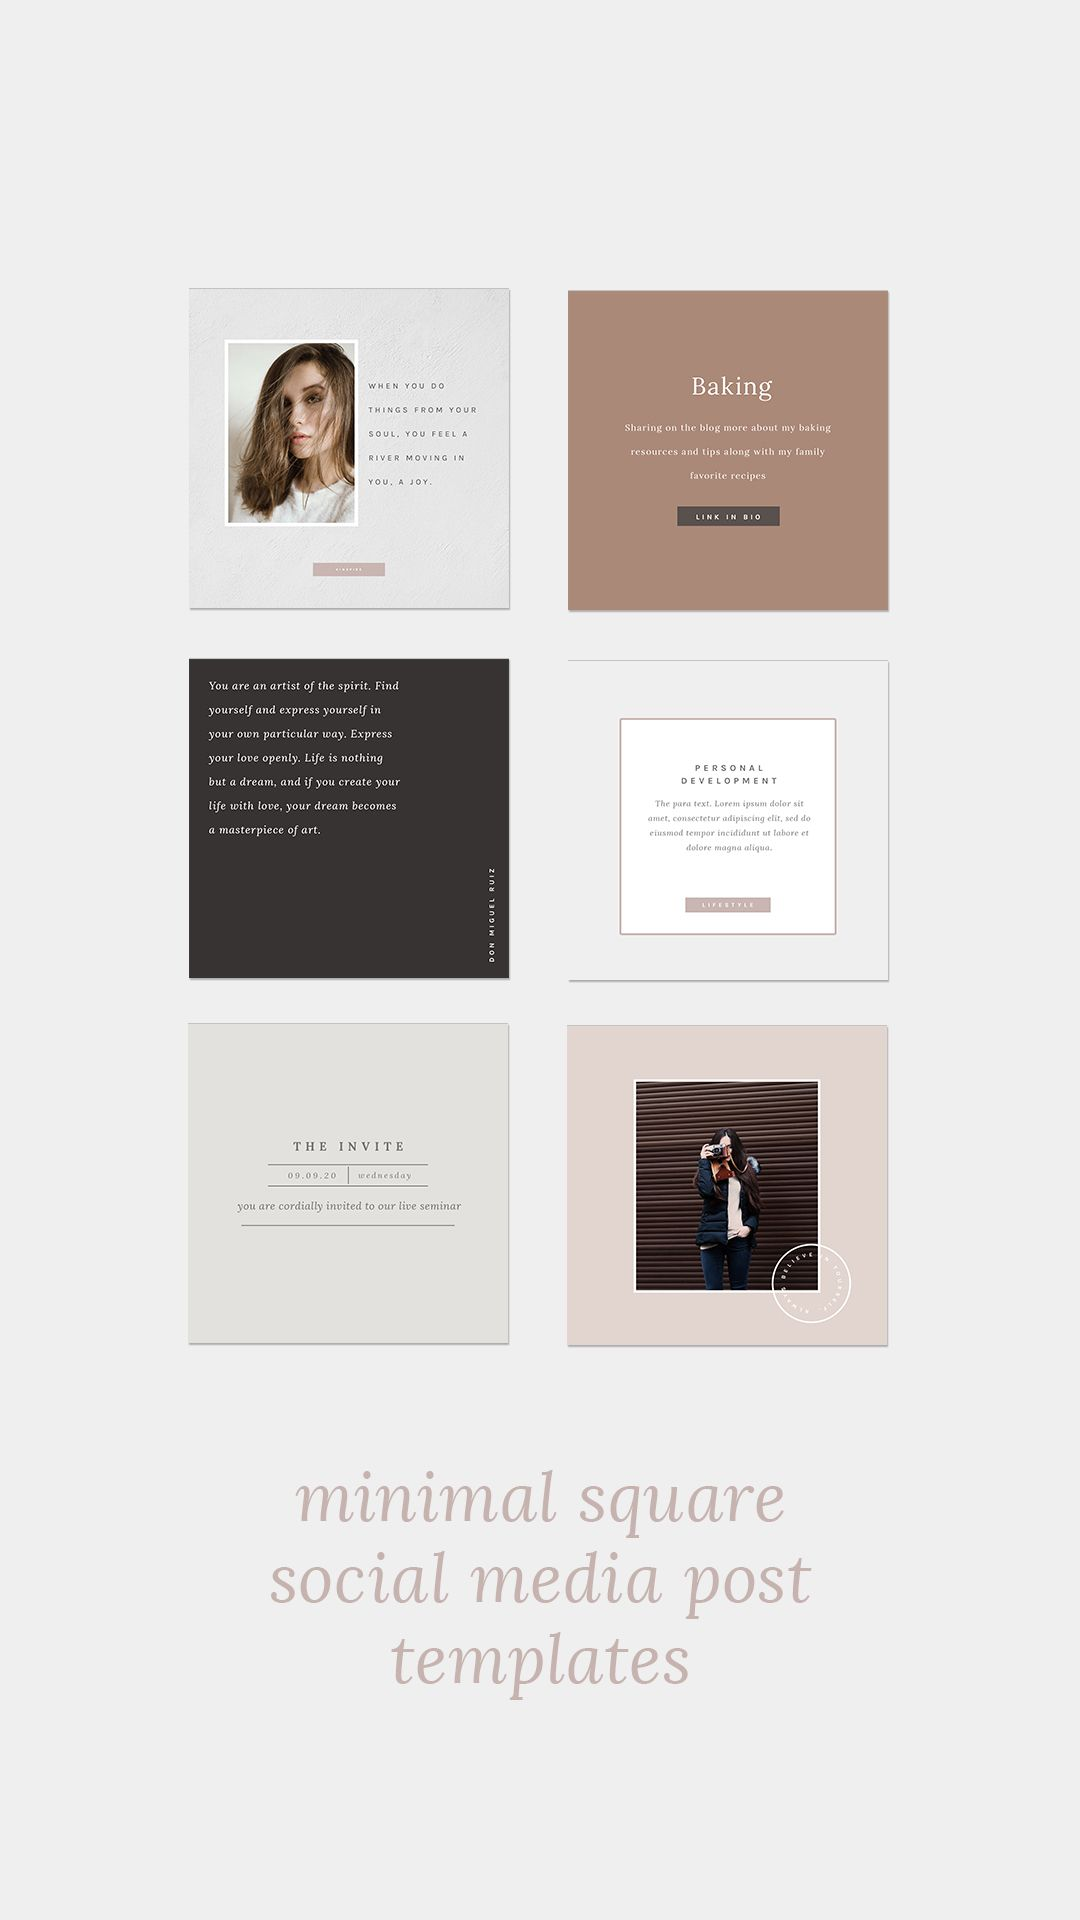 20 Square Minimal Social Media Design Templates For Instagram Facebook And Pinterest Easy To Use In In 2020 Social Media Social Media Template Social Media Graphics